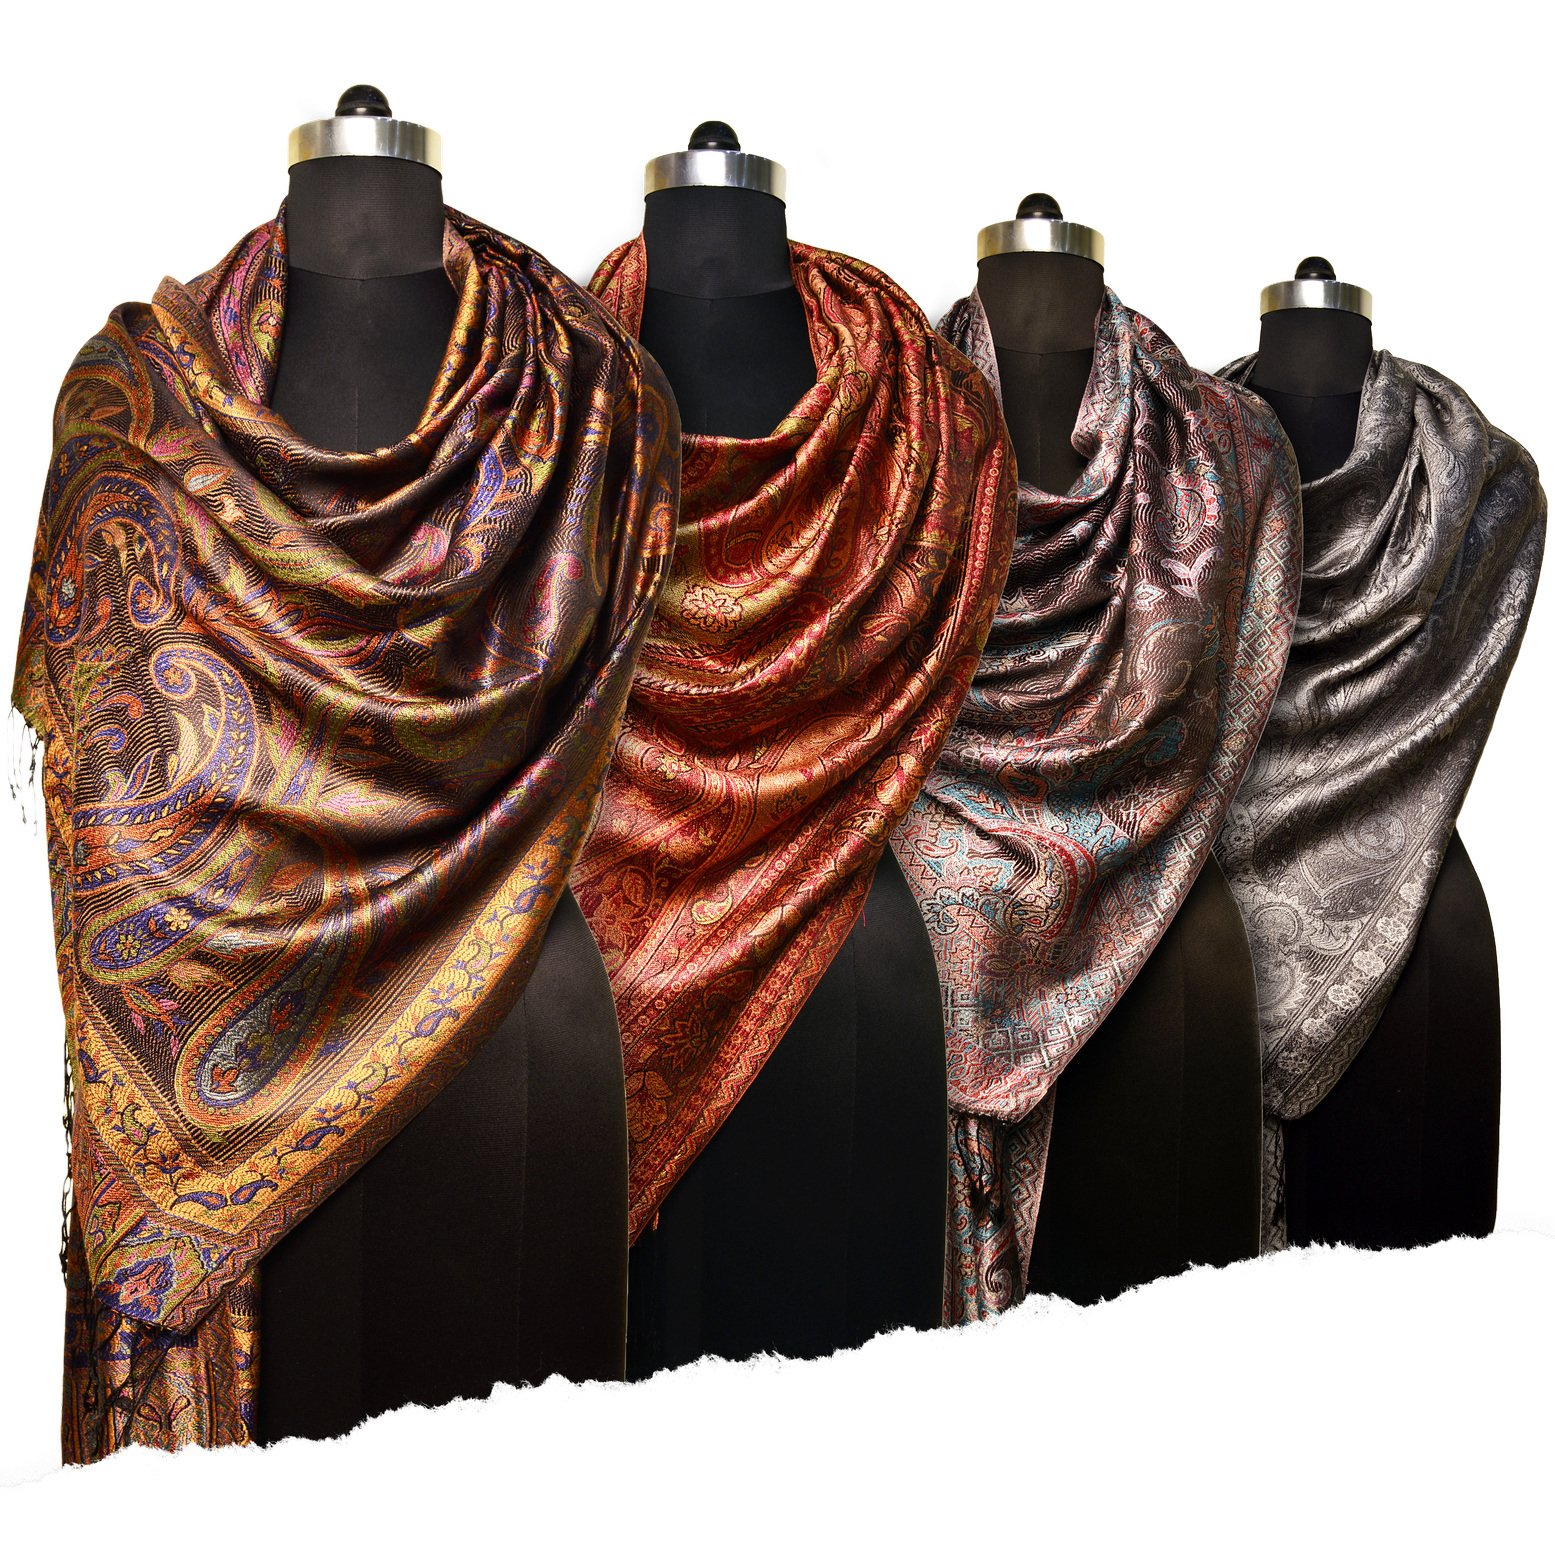 mulberry silk scarves made in India by manufacturer and exporter - Tri Star Overseas